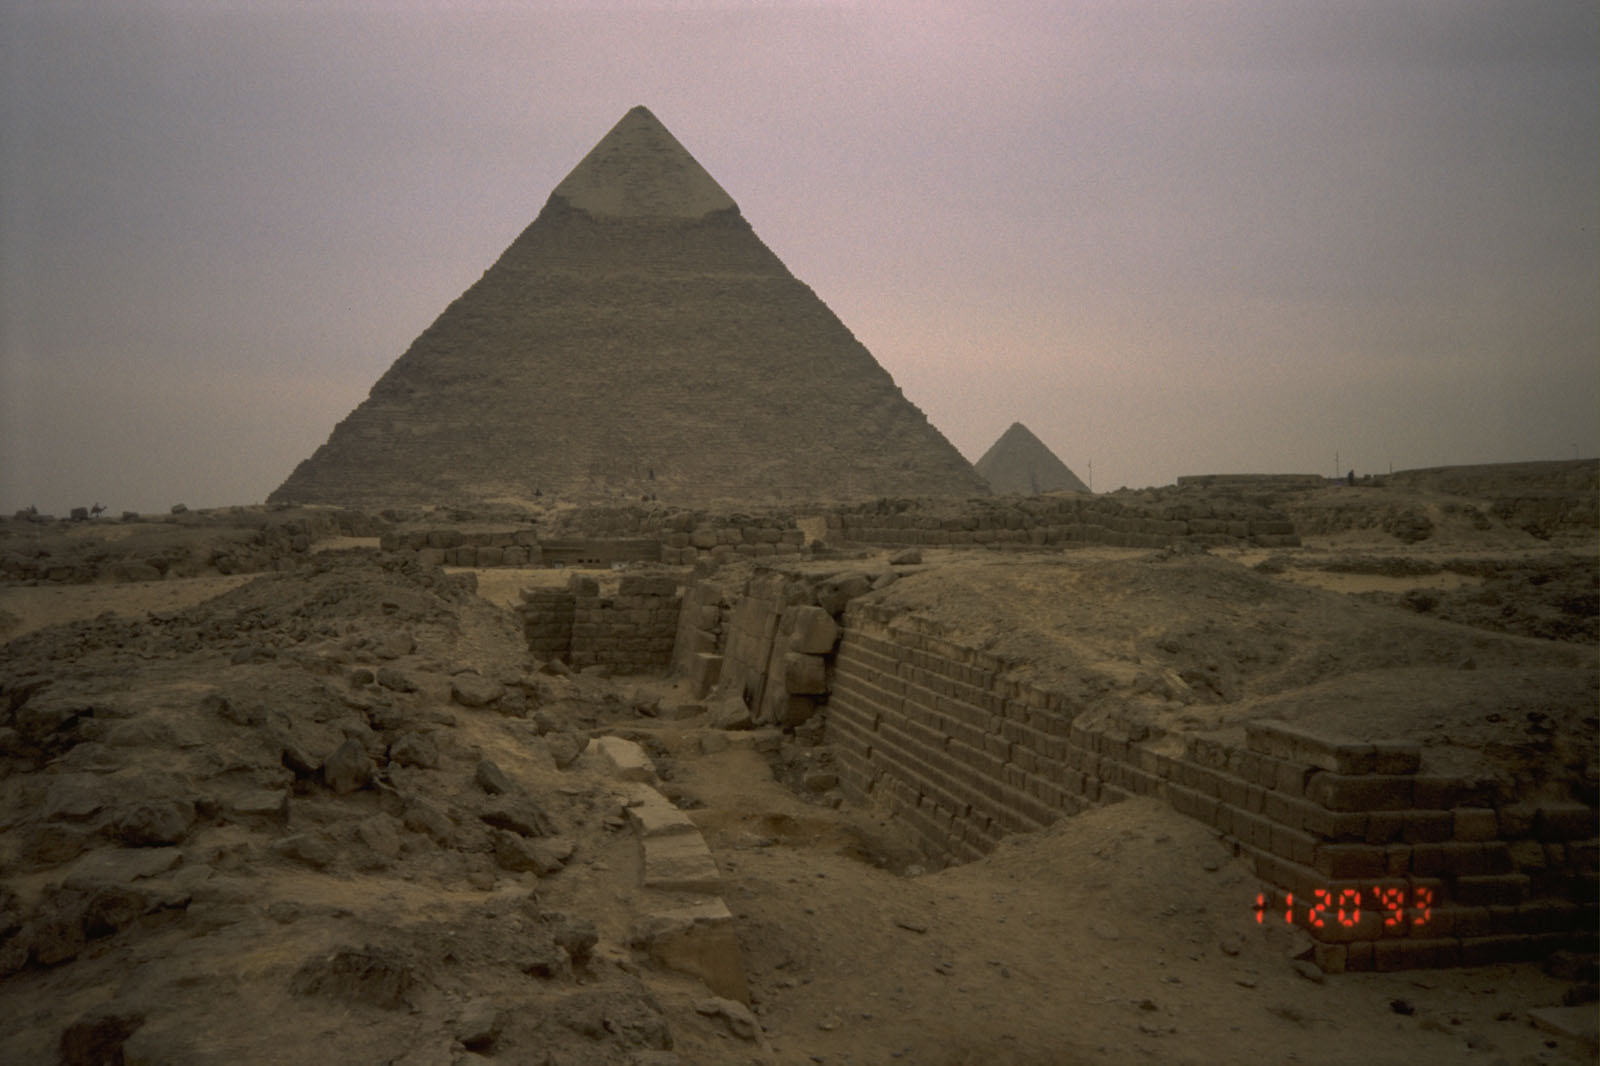 Western Cemetery: Site: Giza; View: G 2100, G 2100-I, G 2114, G 2105, G 2104, G 2103